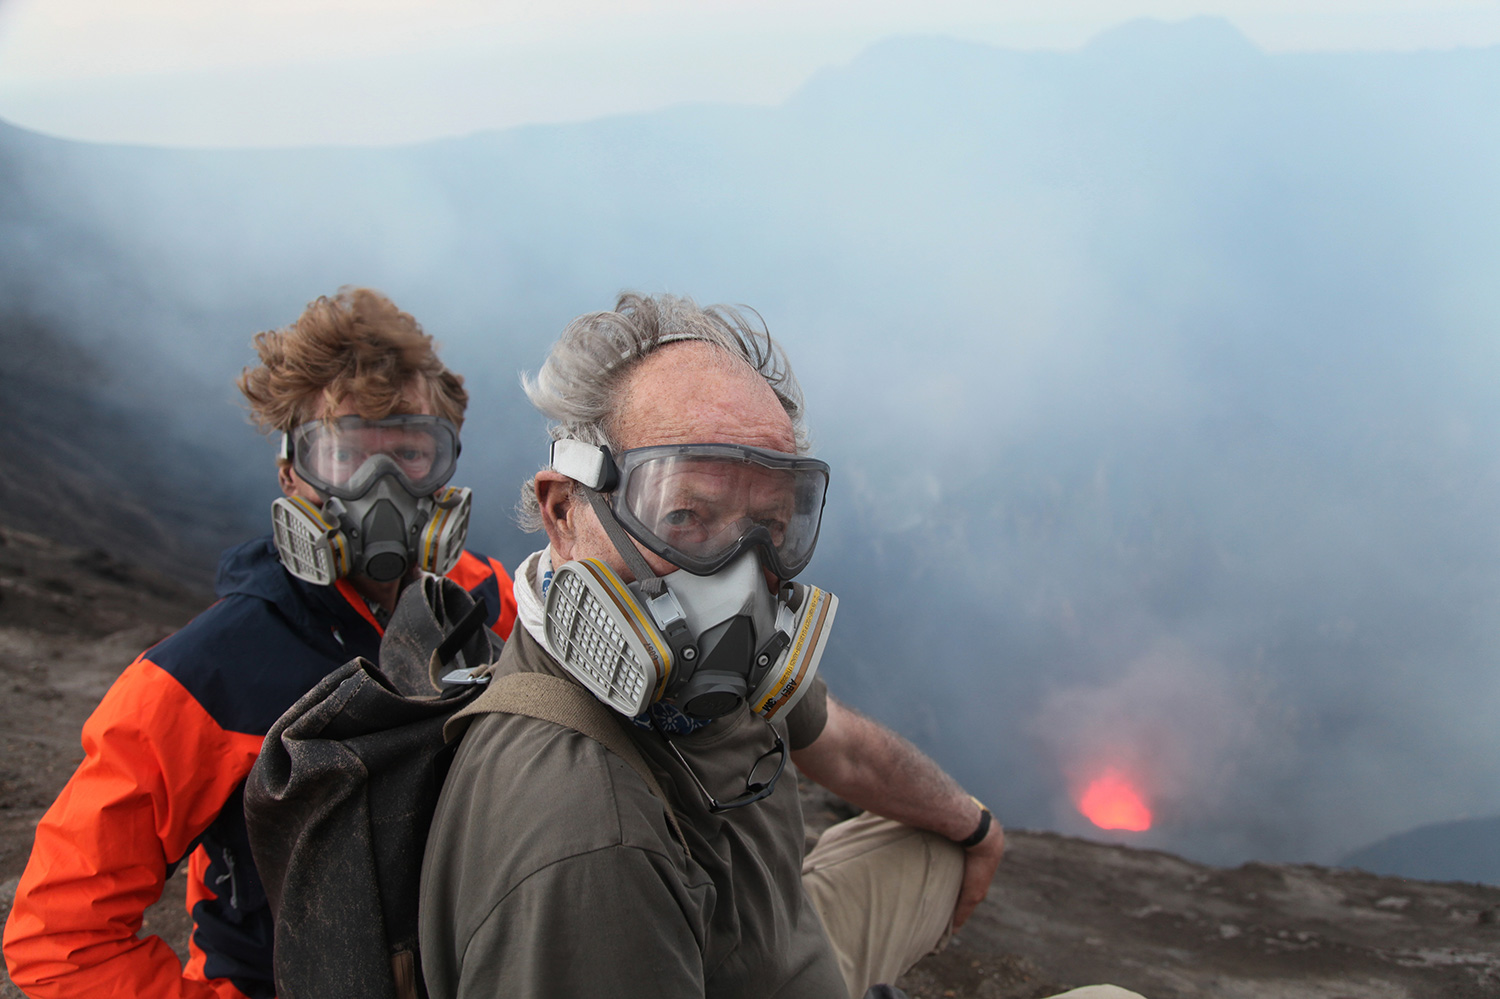 Volcanologist Clive Oppenheimer (left) with filmmaker Werner Herzog in Indonesia during the making of Herzog's 'Into the Inferno,' on location in Indonesia. Courtesy of Netflix